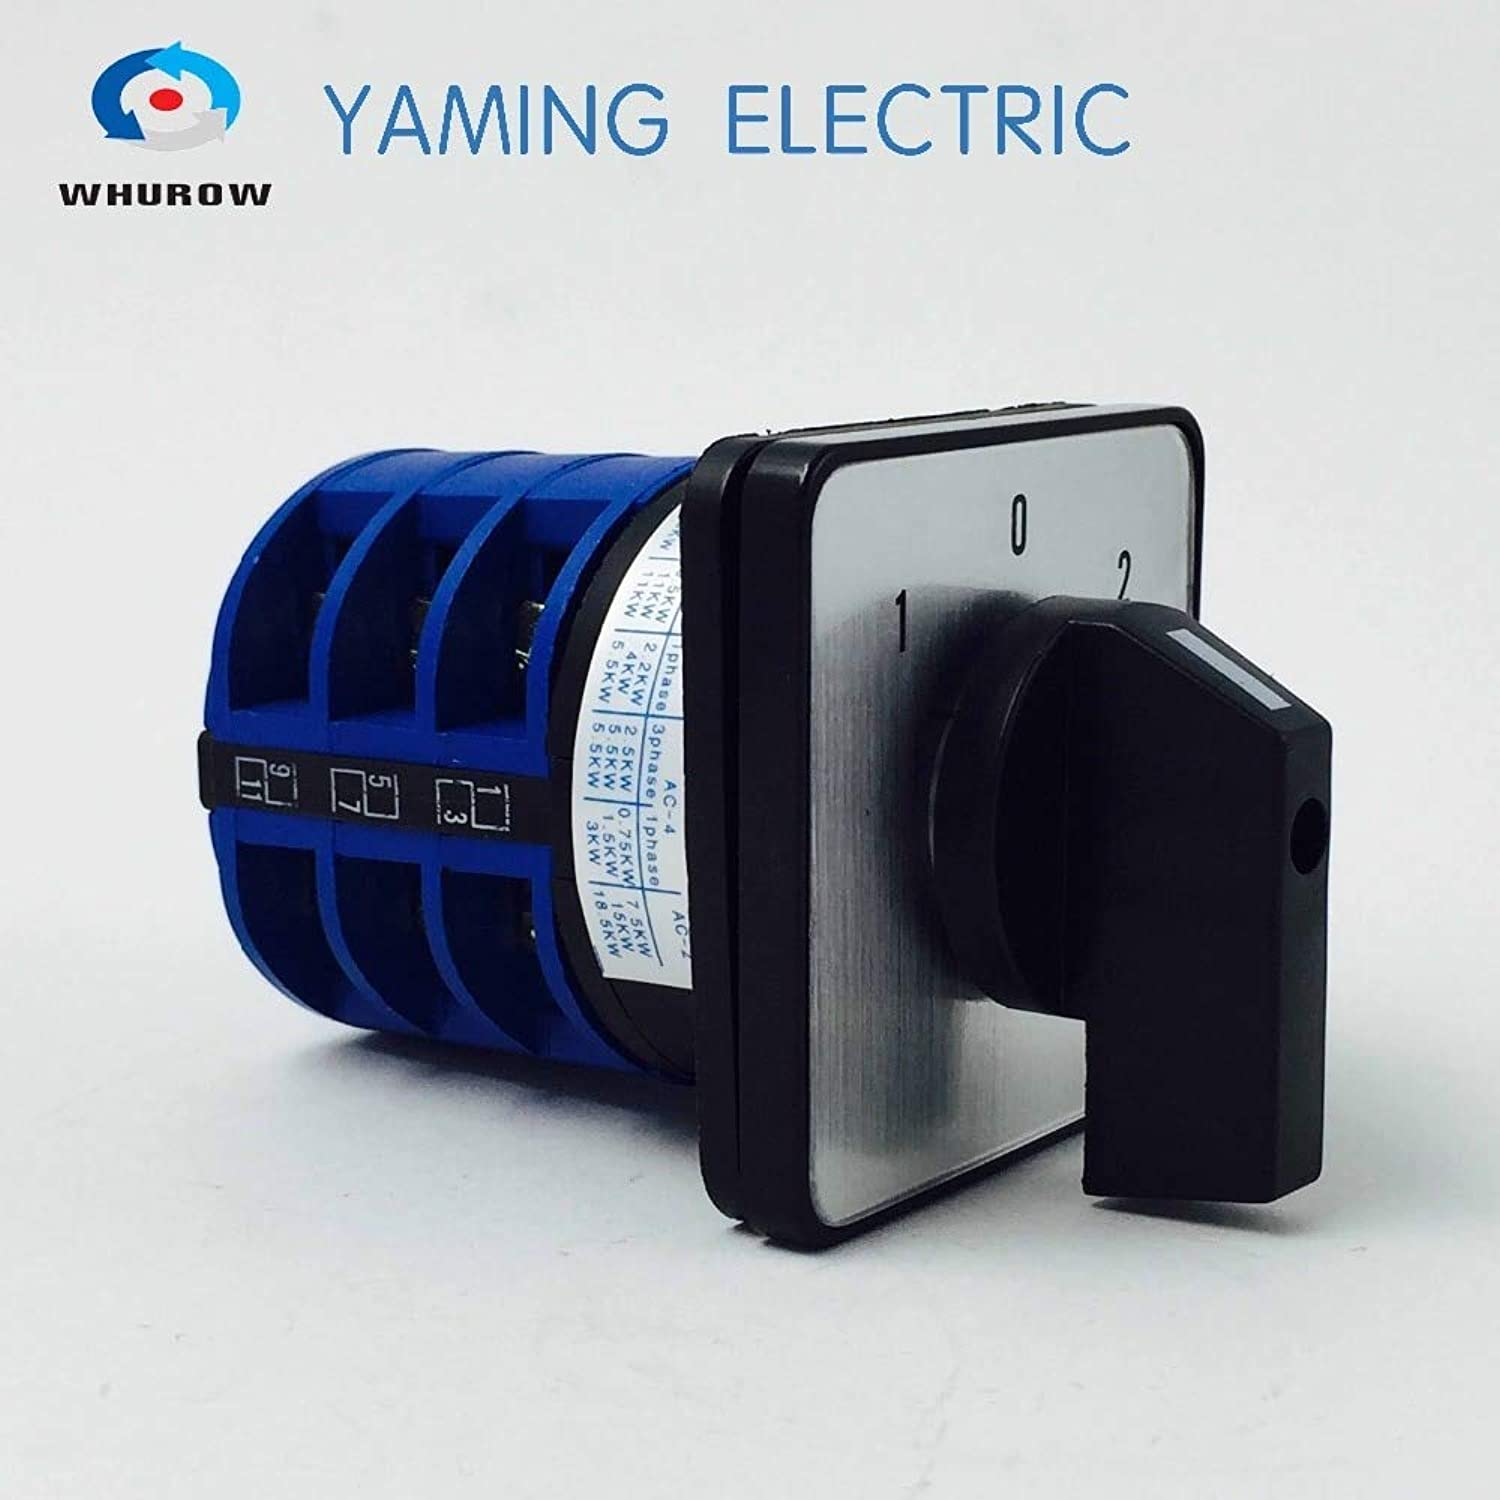 1pcs redary Switch 3 Position 660V 32A 3 Phases Electrical Changeover cam Switch YMW2632 3  (color  blueee)